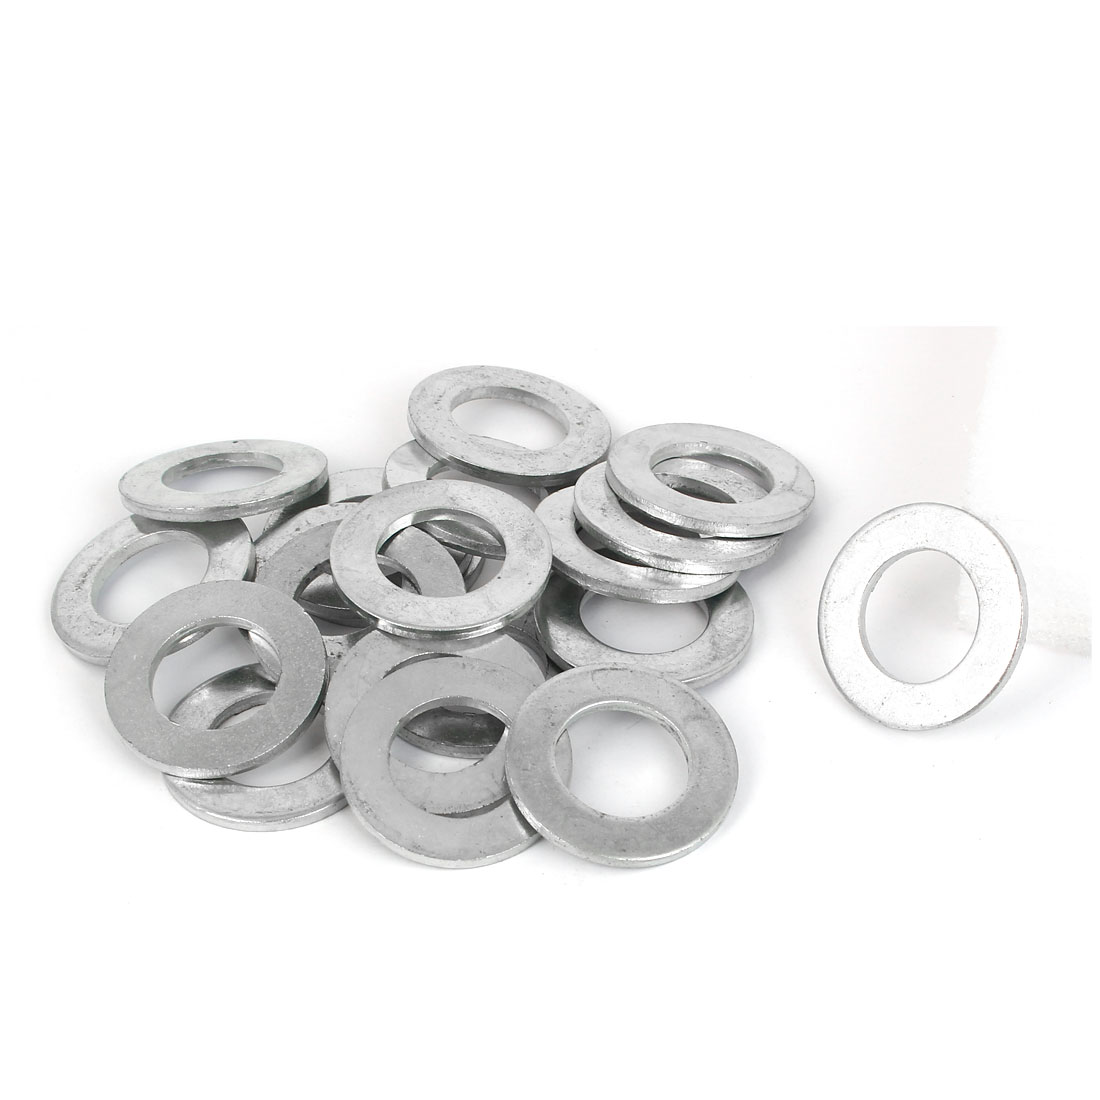 22mm x 38mm x 3mm Zinc Plated Flat Pads Washers Gaskets Fasteners GB97 20PCS